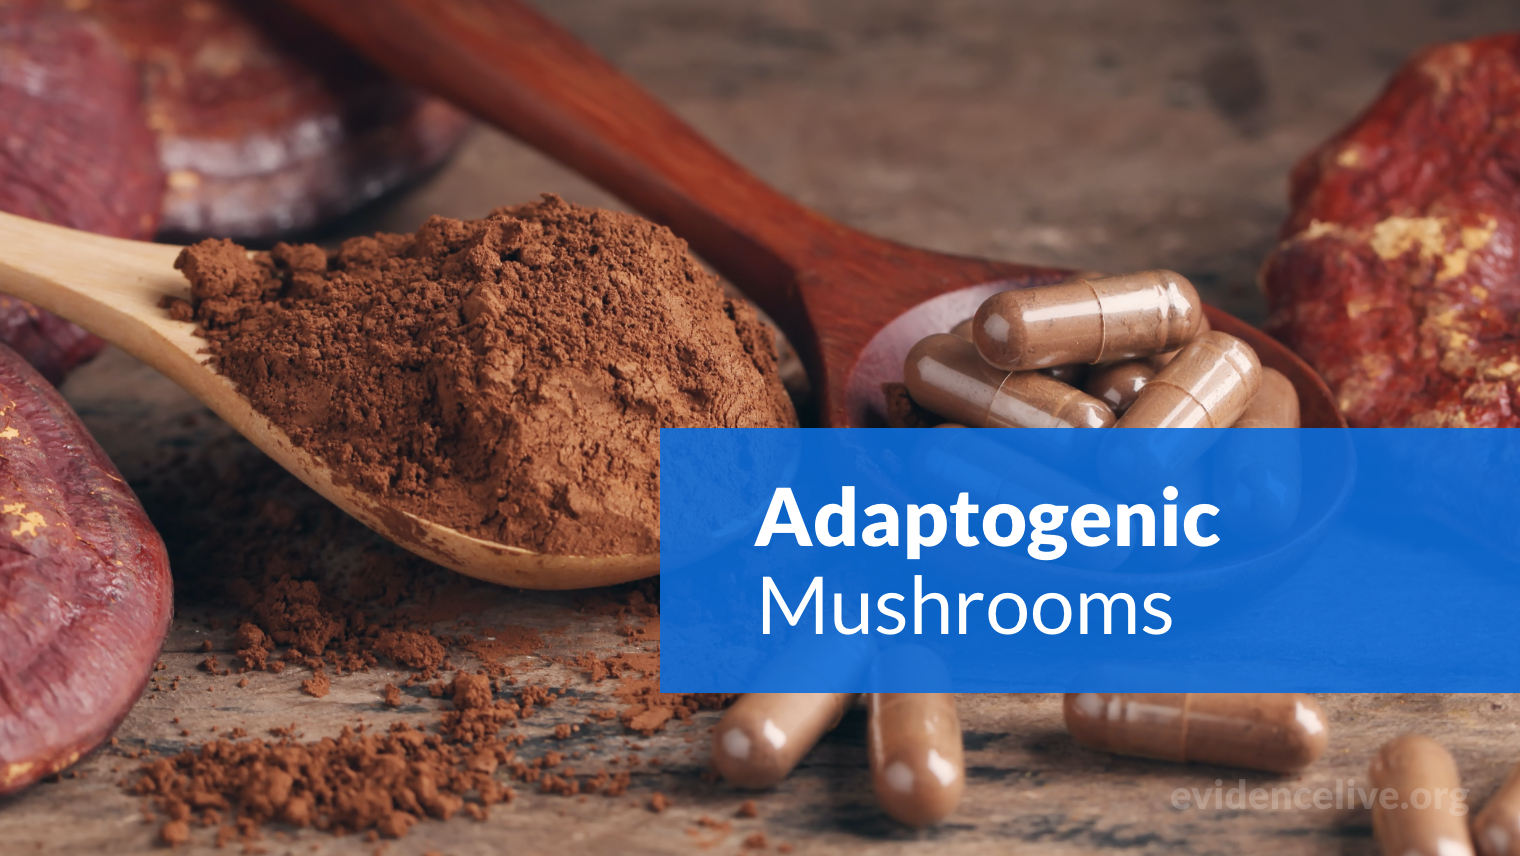 What Are Adaptogenic Mushrooms? Health Benefits, Risks, and Types